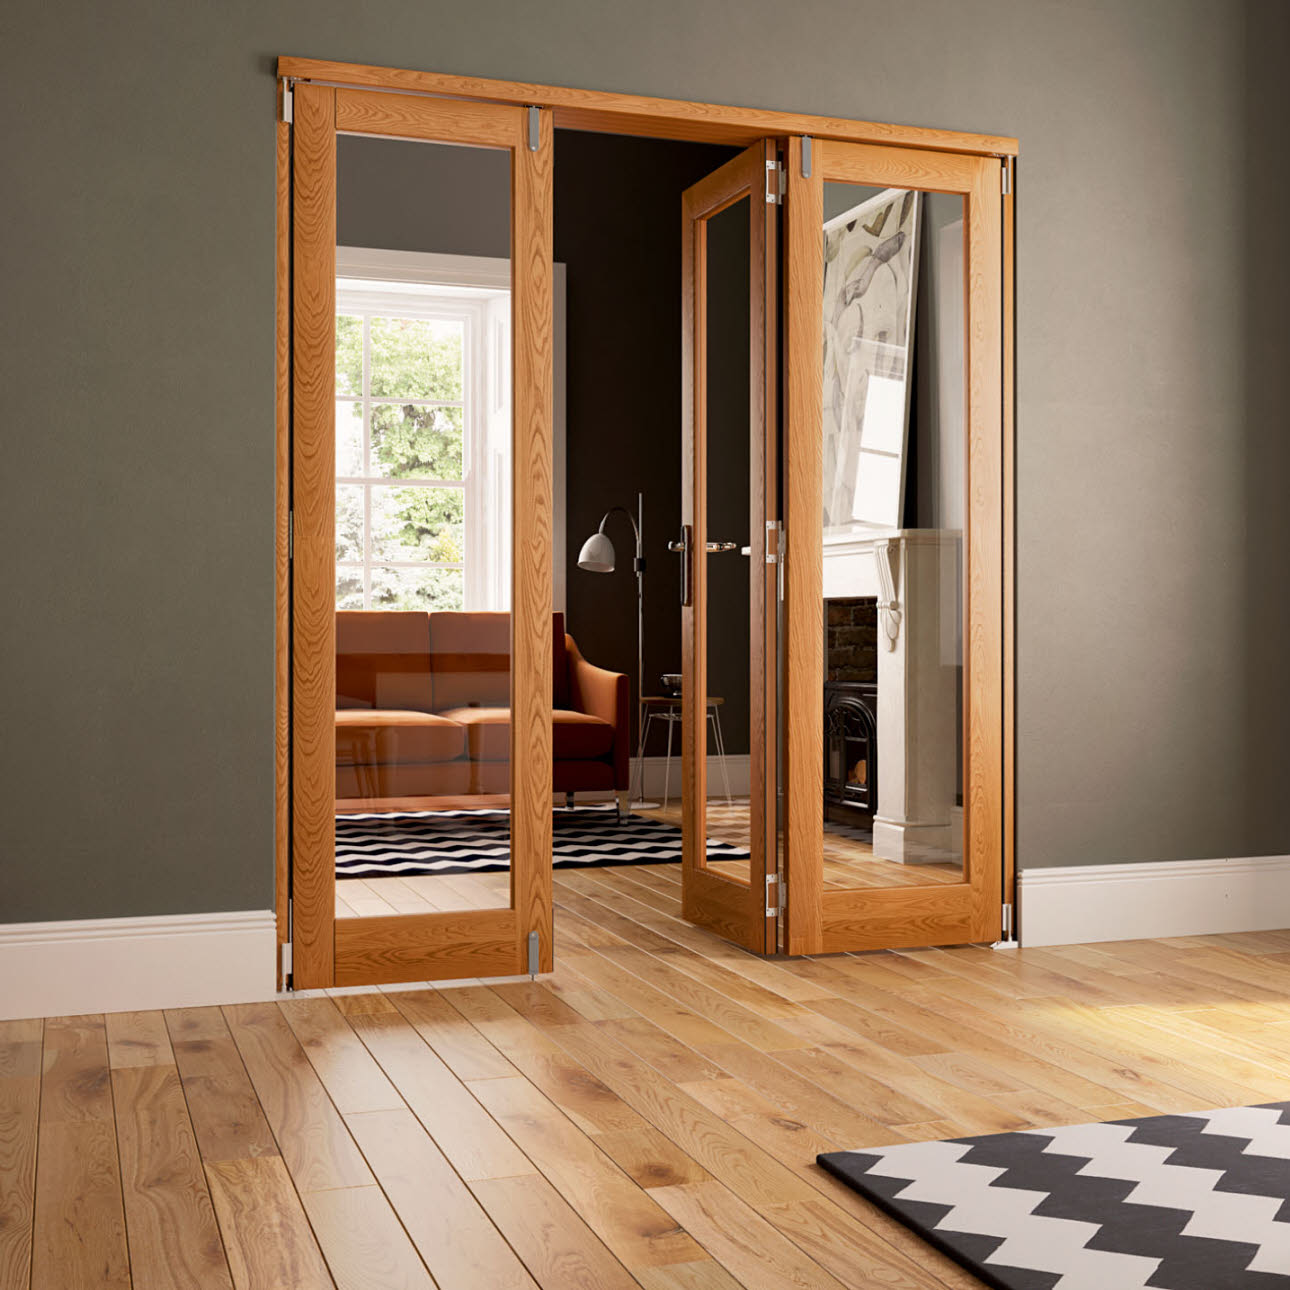 Oak veneer folding internal doors, open